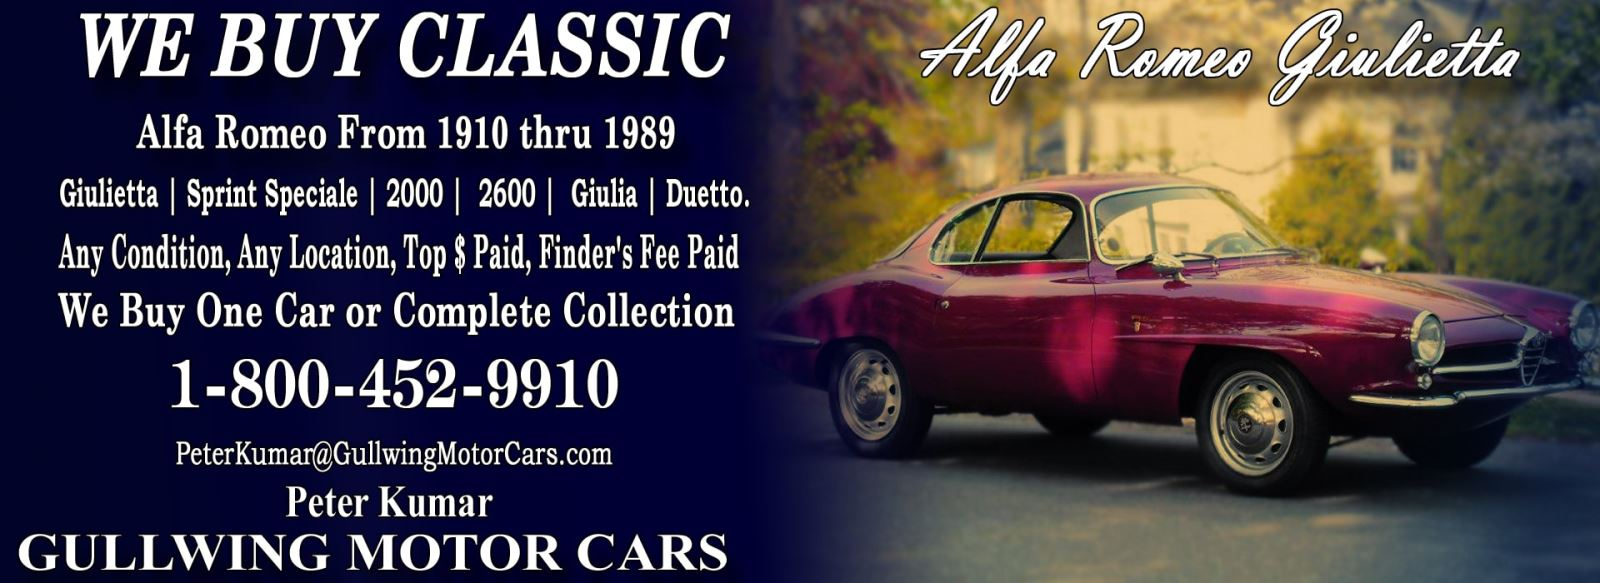 Classic Alfa Romeo Giulietta for sale, we buy vintage Alfa Romeo Giulietta. Call Peter Kumar. Gullwing Motor